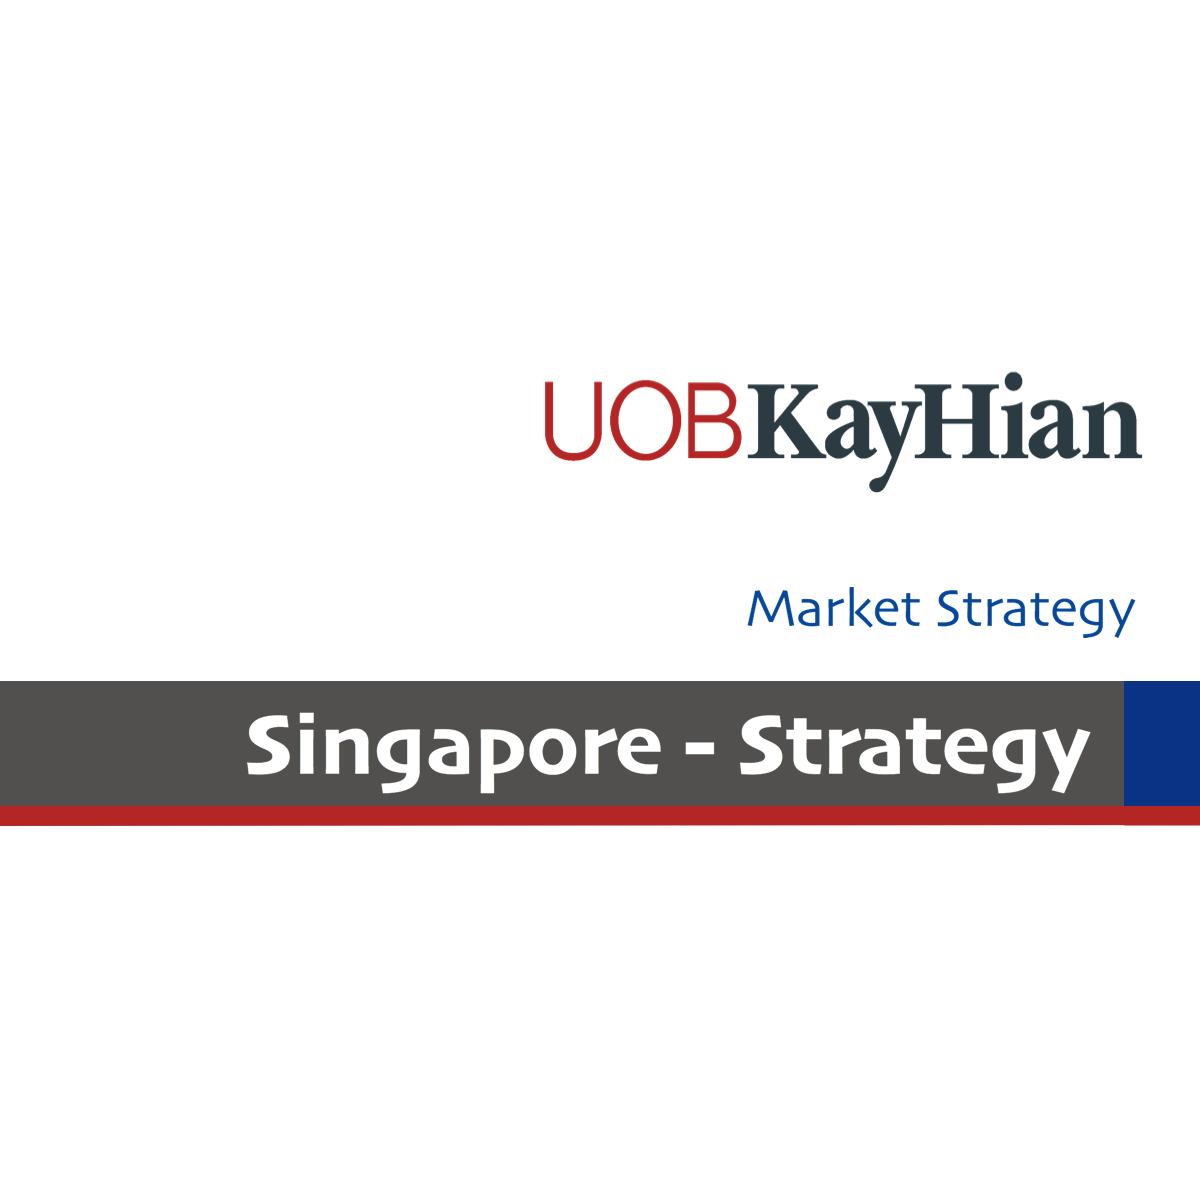 Singapore Strategy - UOB Kay Hian 2018-07-03: Switch Out Of Outperformers For Alpha